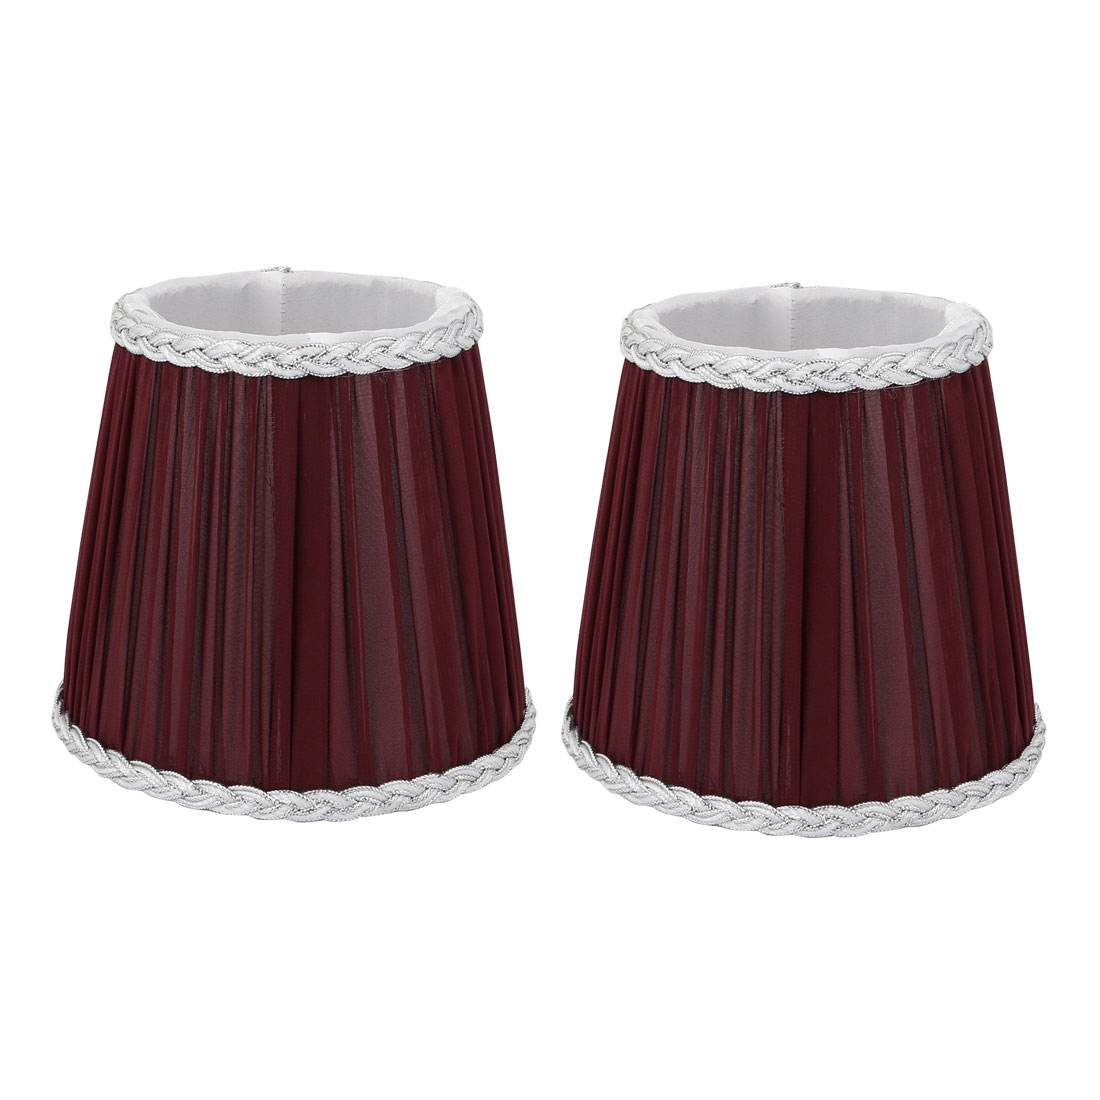 2pcs Wall Shade FloorShade Chandelier Clip-On Lampshade Wine Red Fabric-Covered by